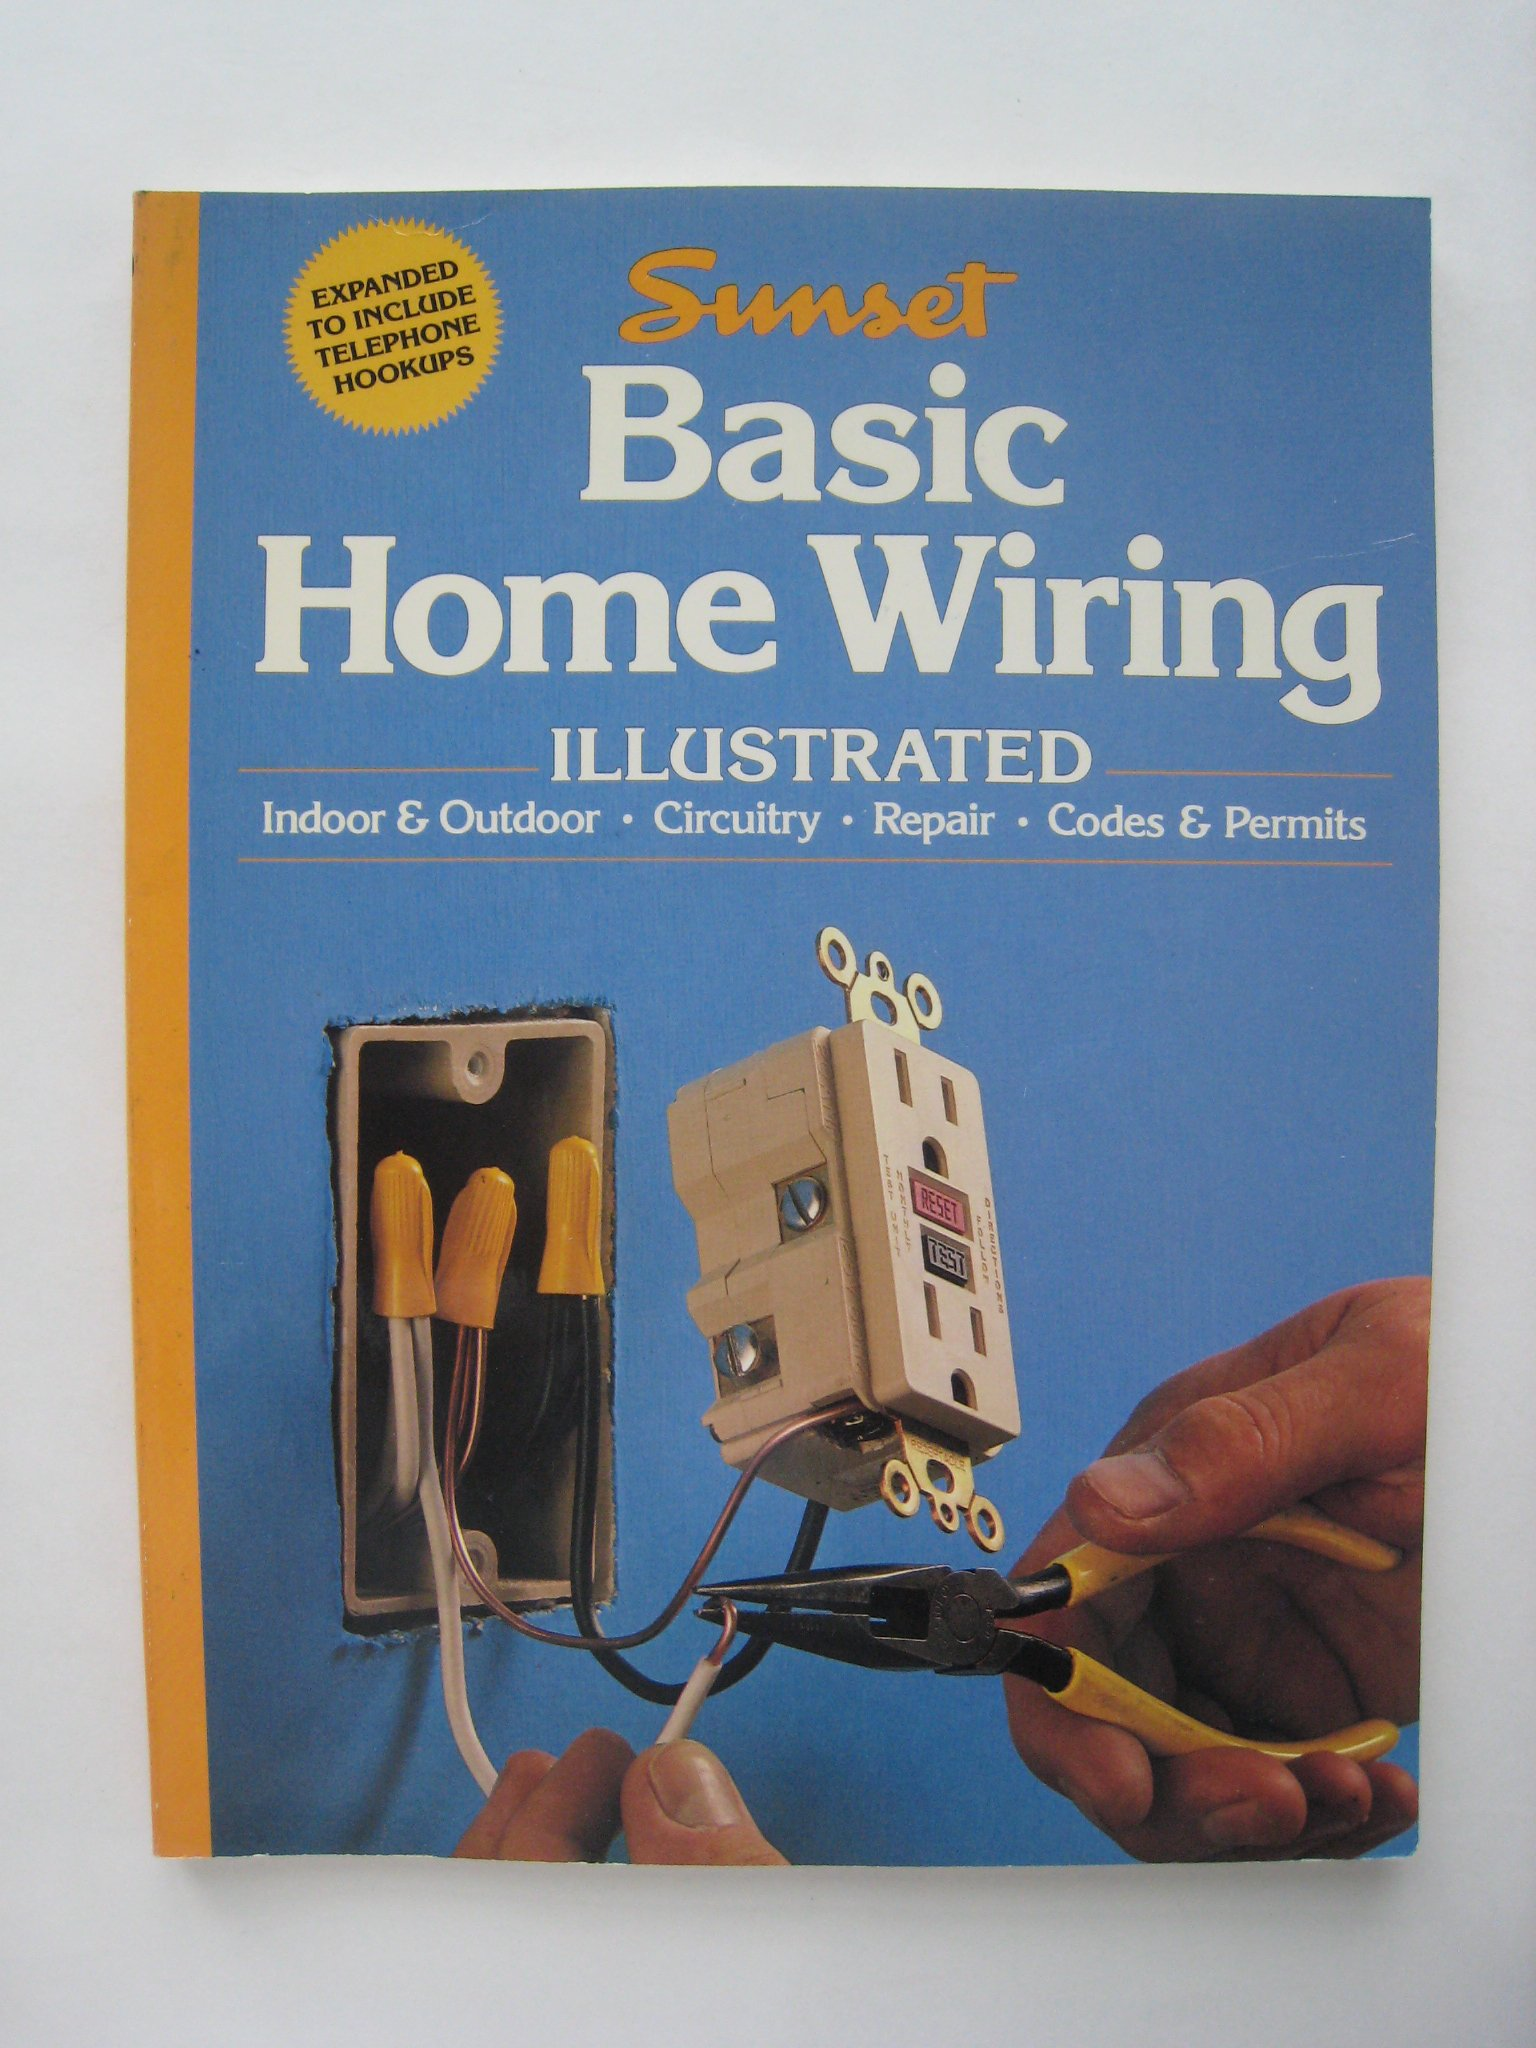 basic home wiring illustrated indoor \u0026 outdoor, circuitrybasic home wiring illustrated indoor \u0026 outdoor, circuitry, repair, codes \u0026 permits by the editors of sunset and southern living amazon com books